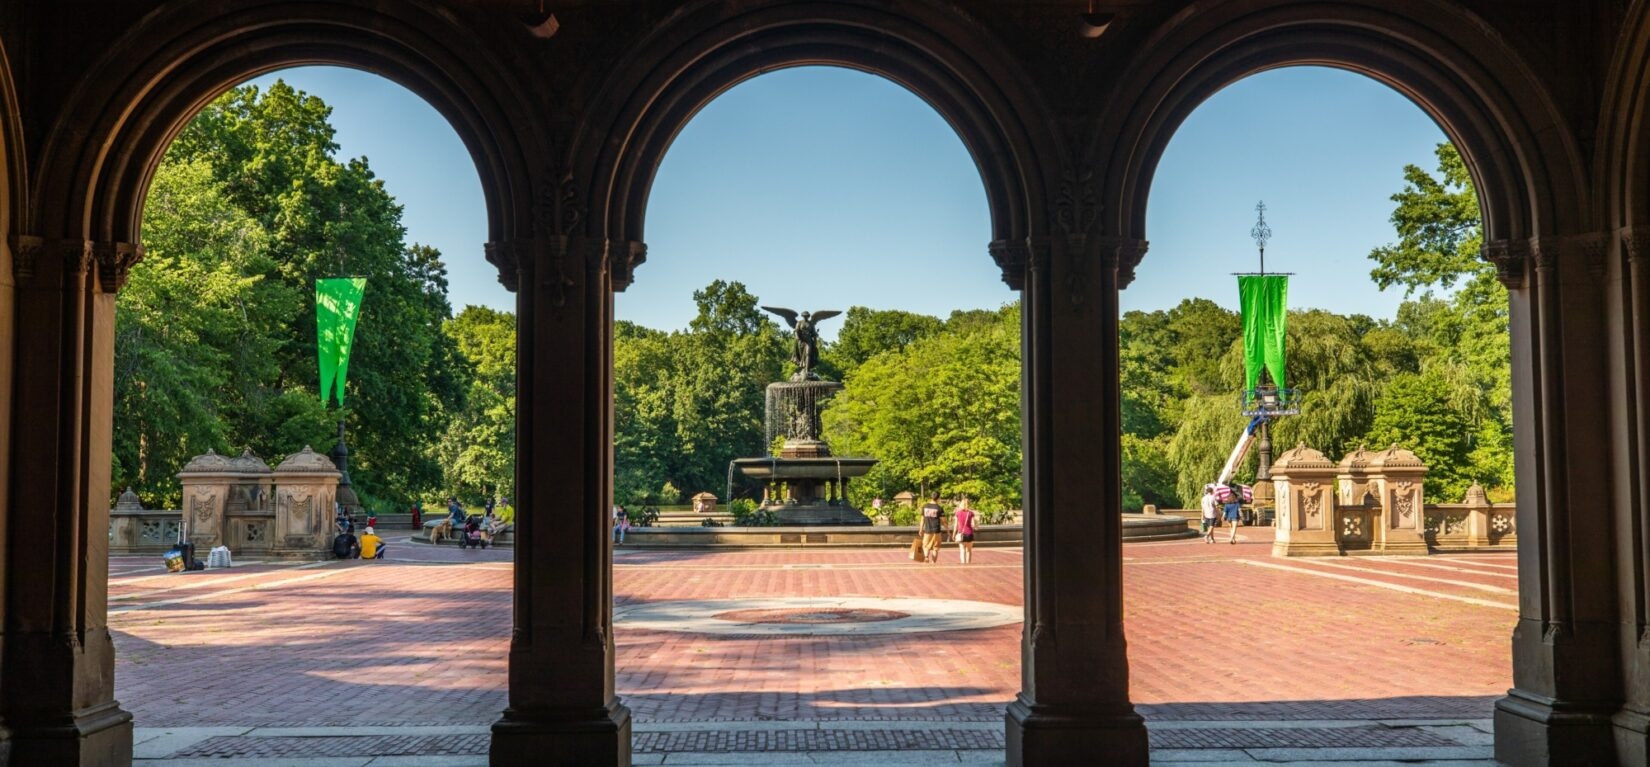 Bethesda Terrace framed in 3 arches looking out from the Arcade